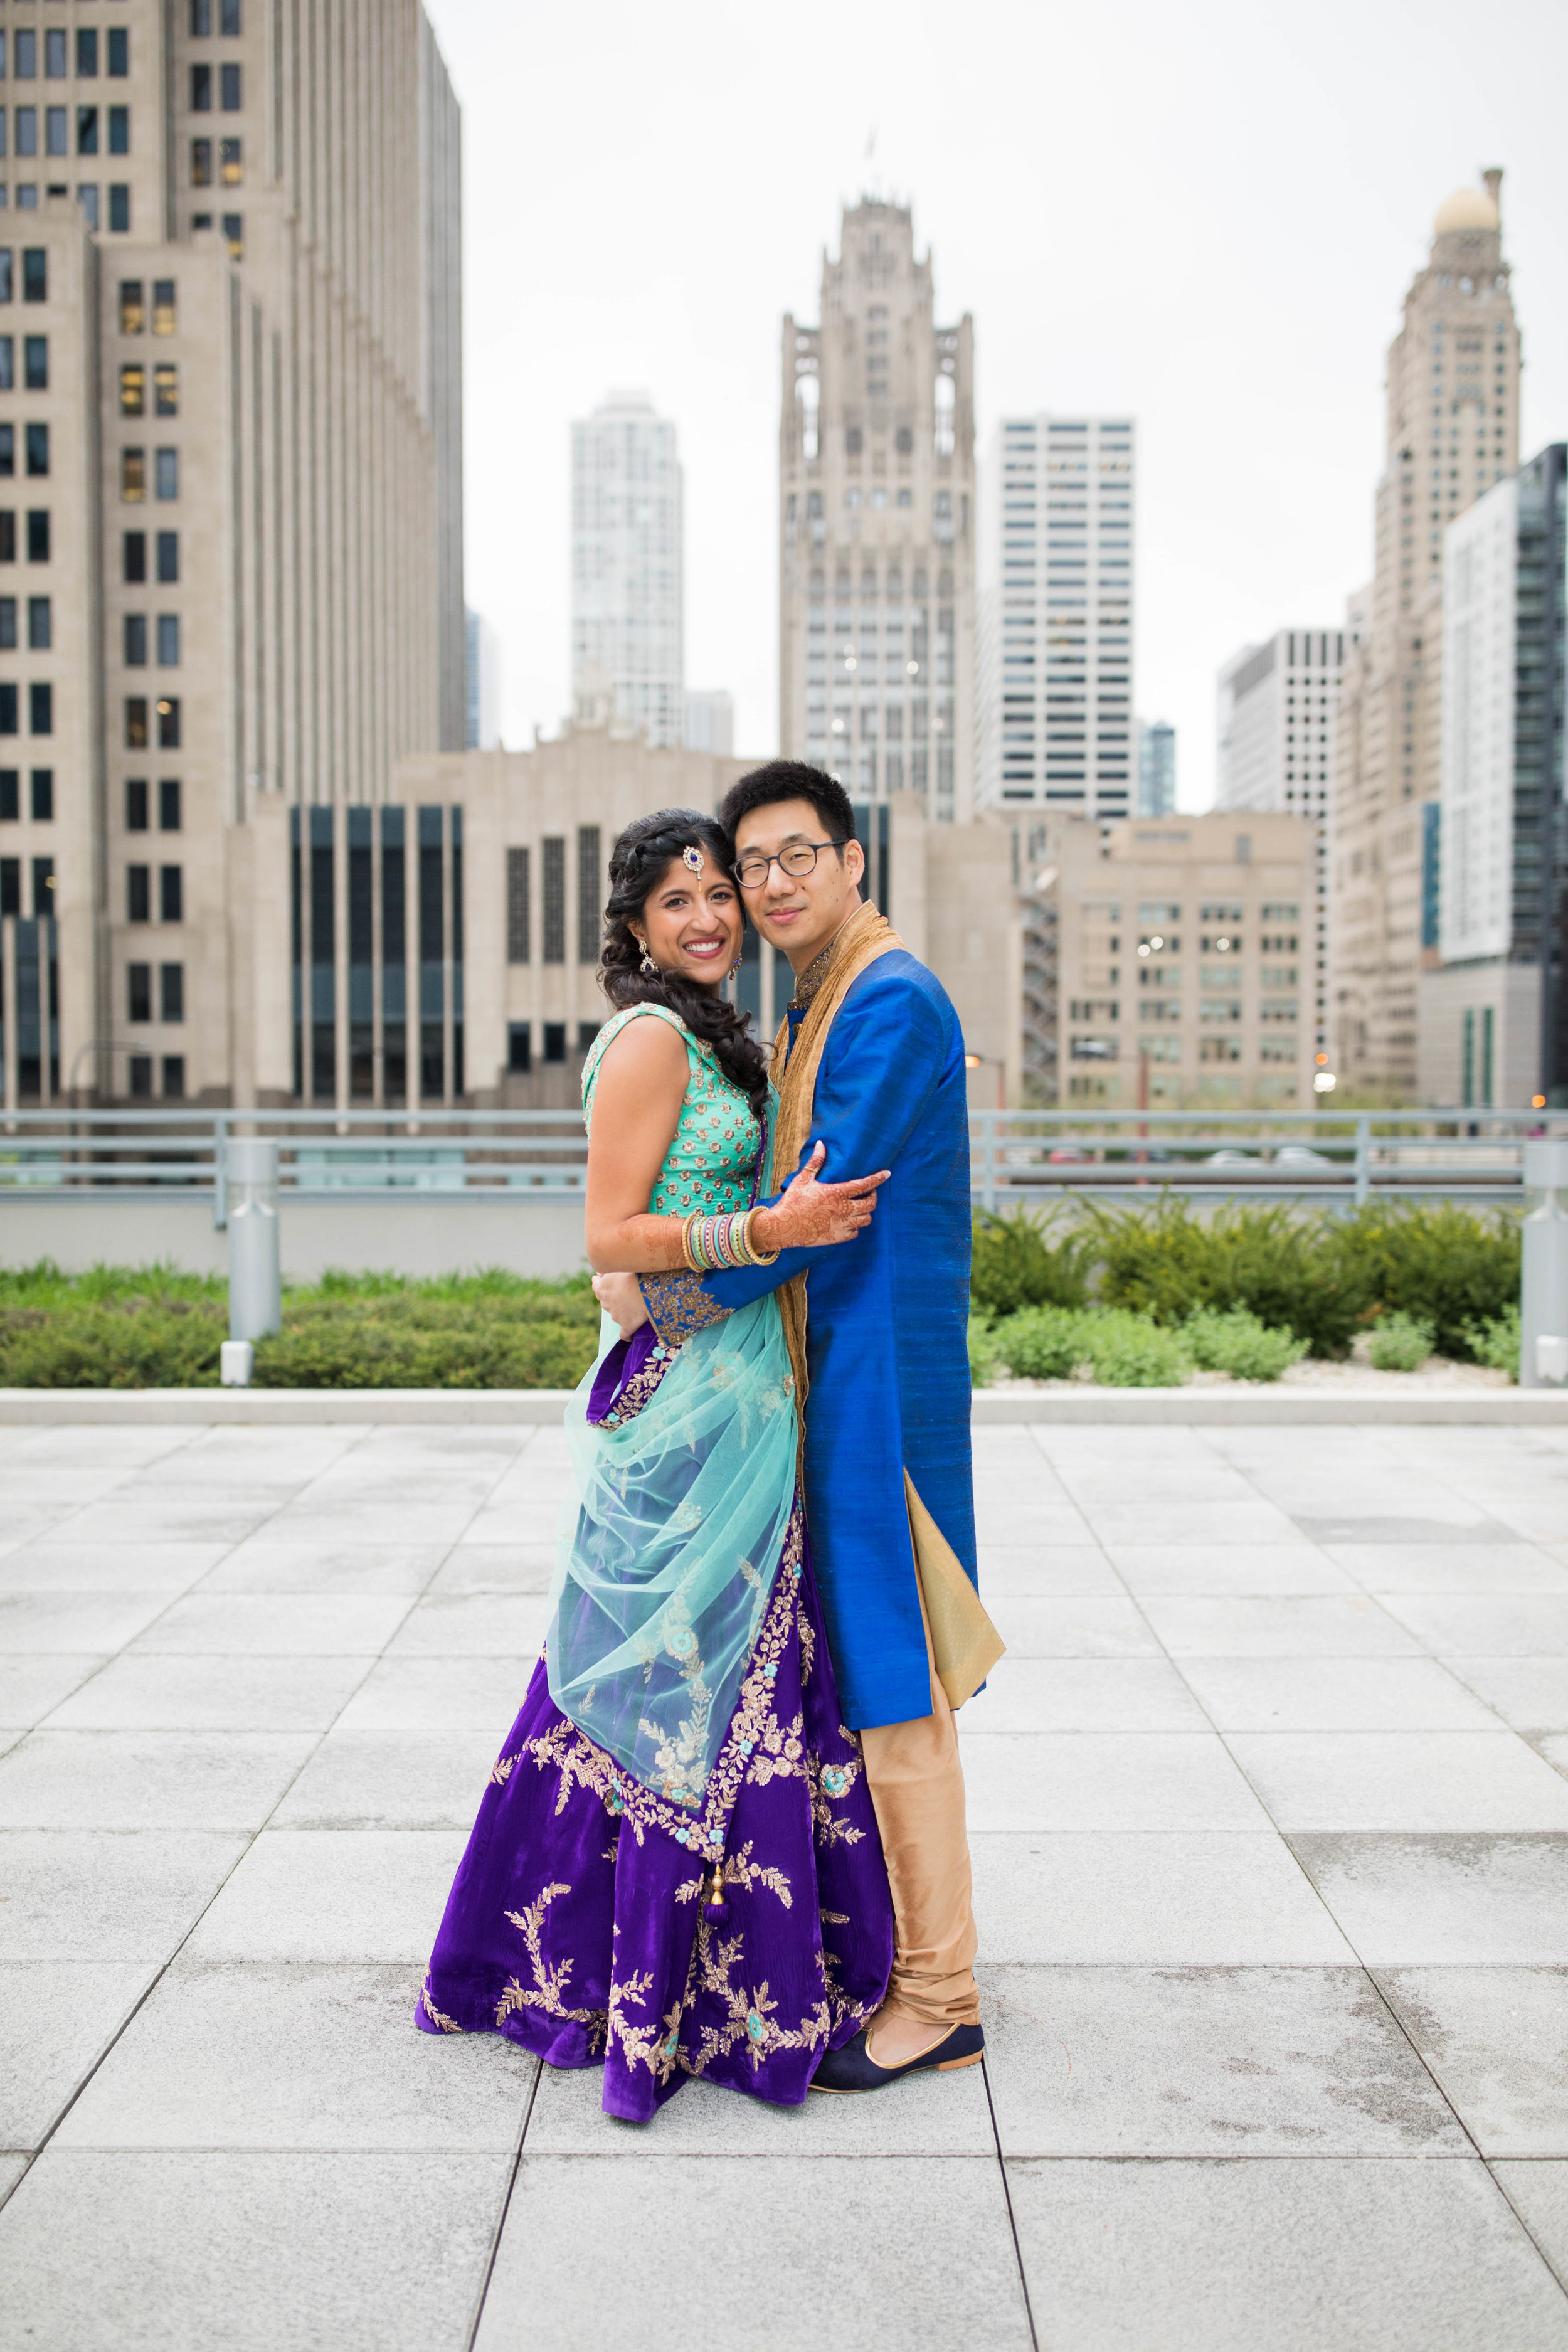 LeCapeWeddings - Chicago South Asian Wedding -13.jpg